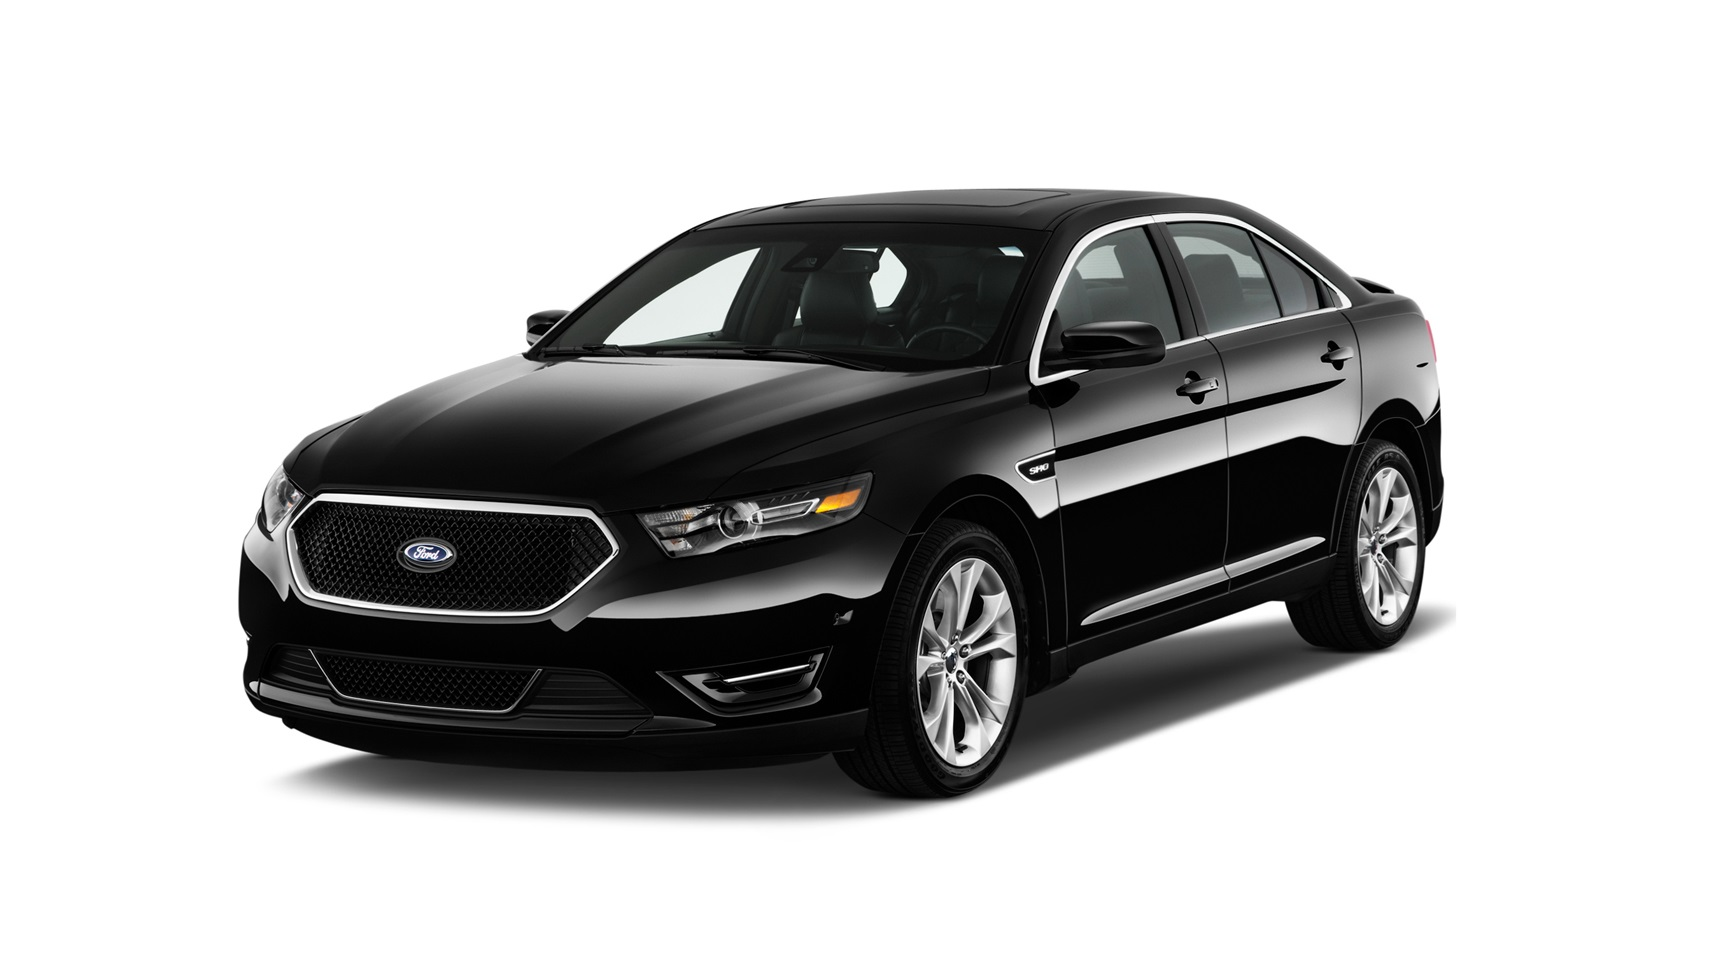 Ford Taurus Se >> Ford Taurus 2017 3.5L V6 LTD in UAE: New Car Prices, Specs, Reviews & Photos | YallaMotor